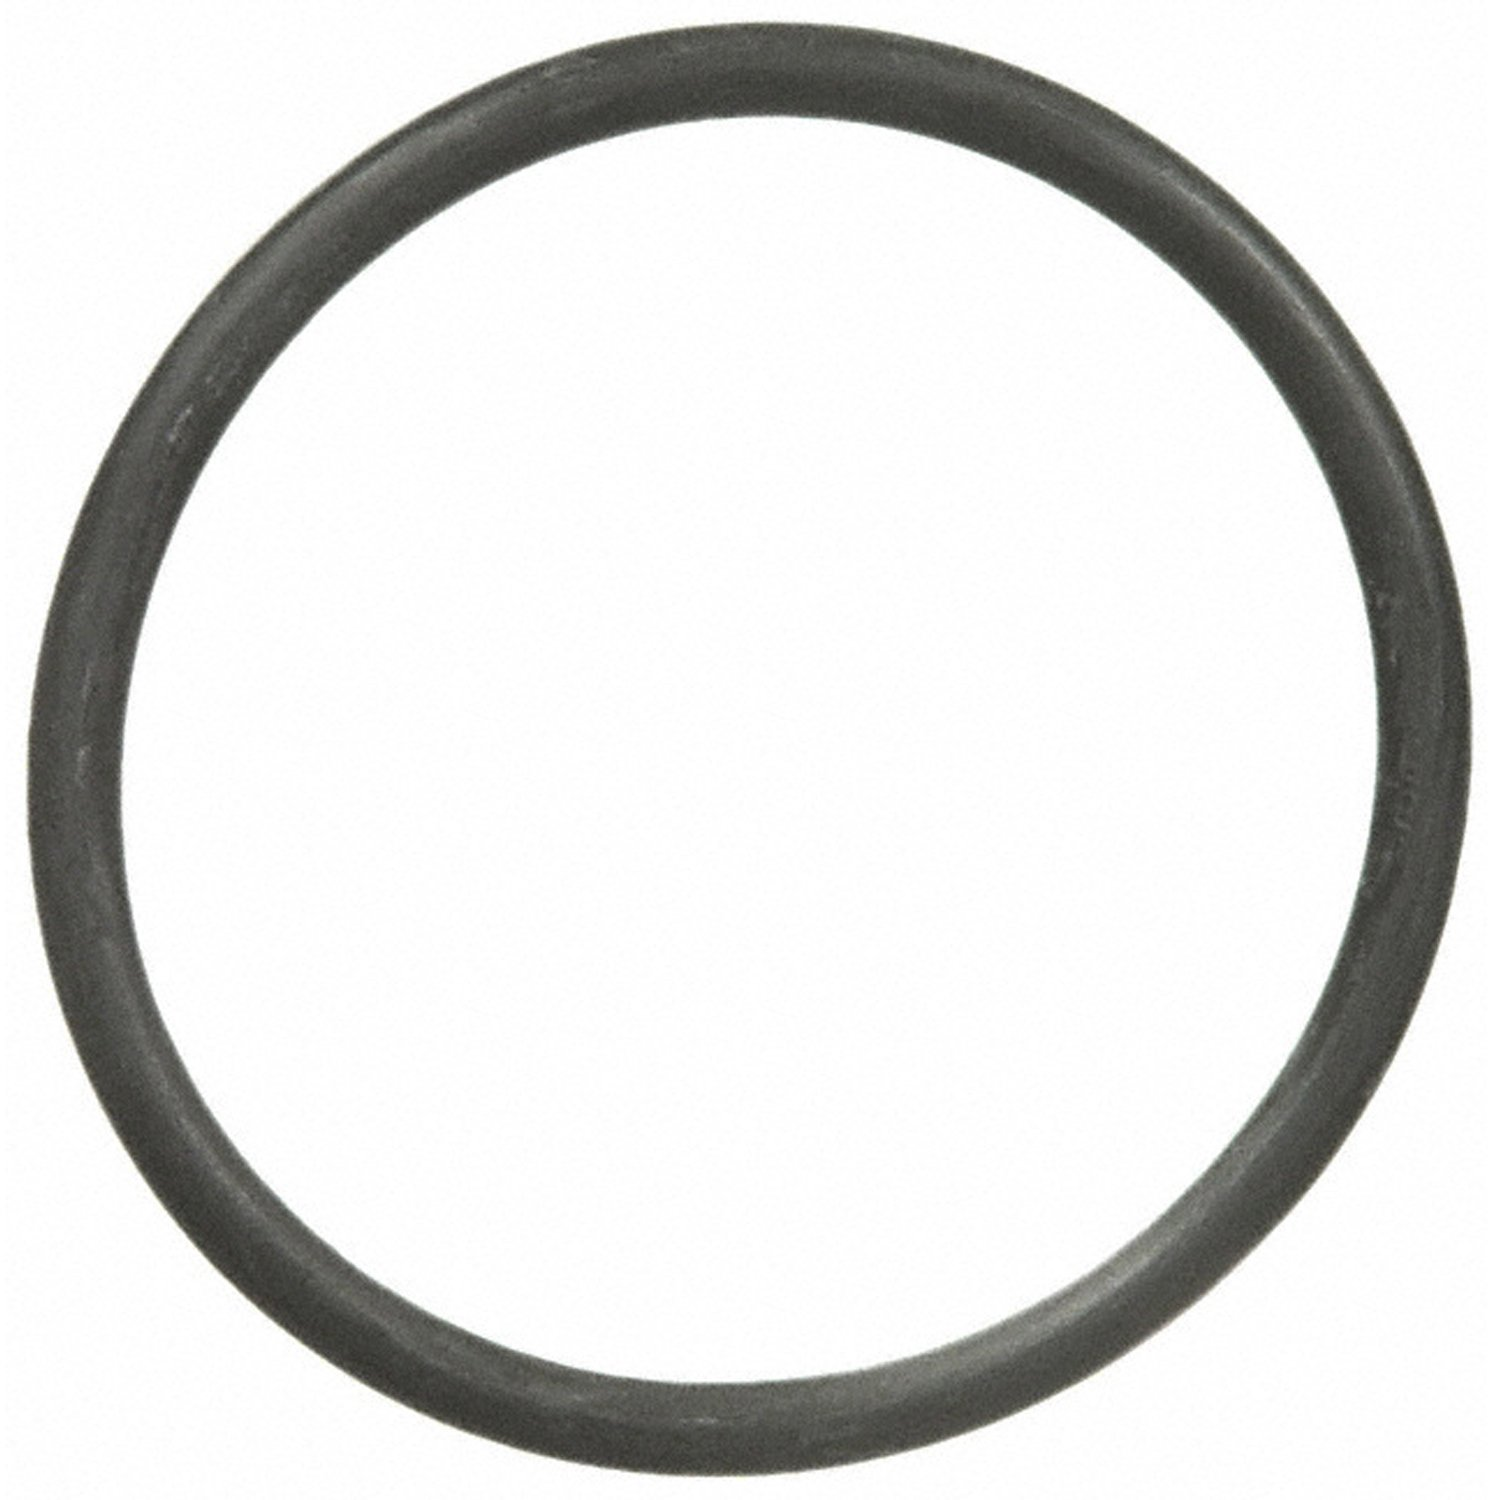 2006 Volkswagen Jetta Engine Coolant Outlet O Ring Vw Fp 25598